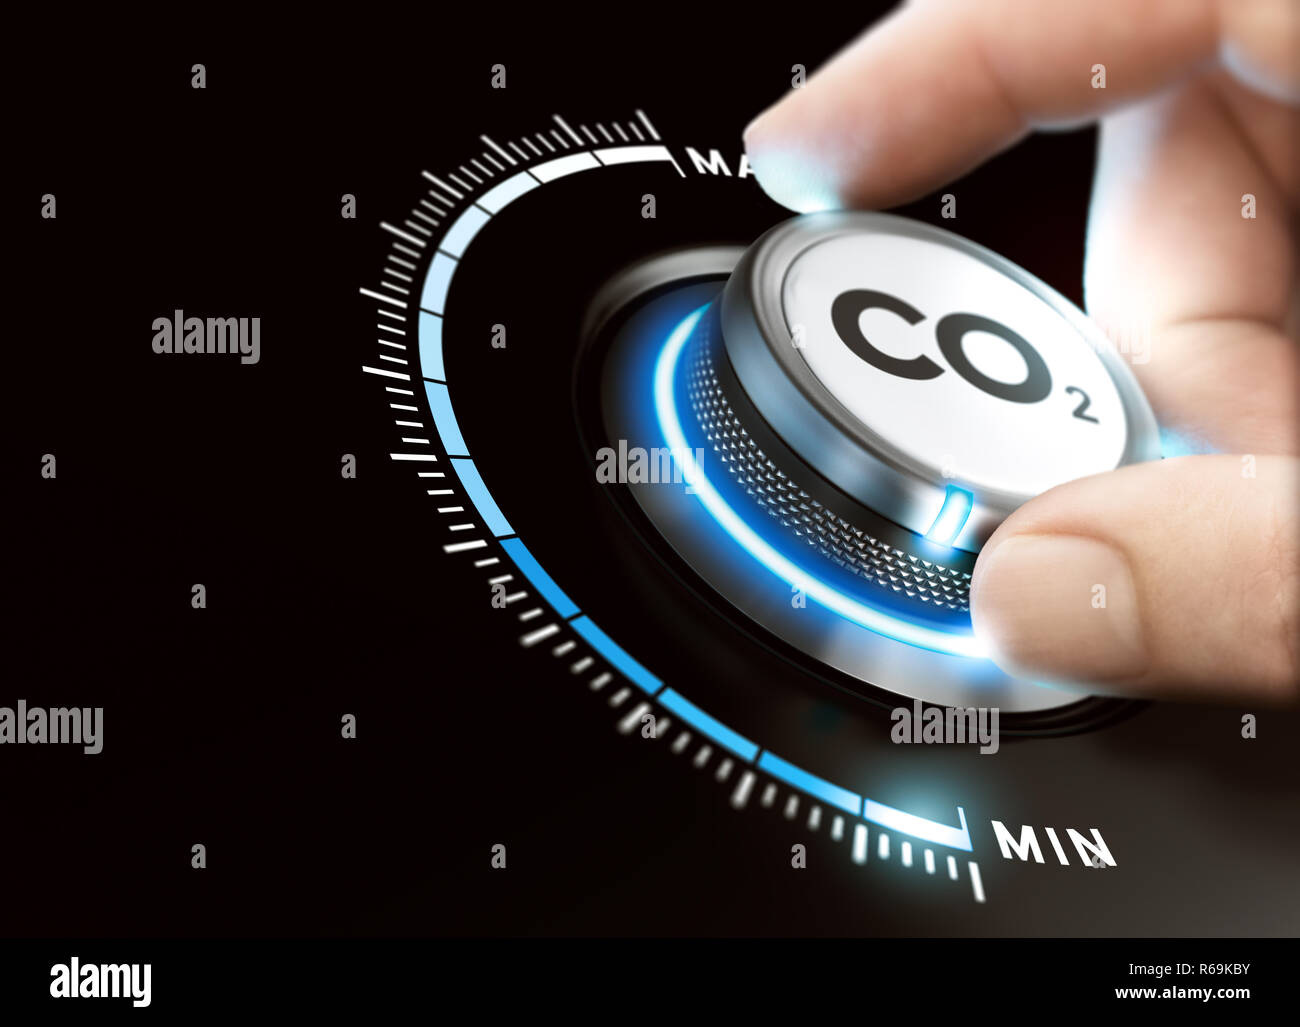 Reduce Carbon Dioxyde Footprint. CO2 Removal - Stock Image